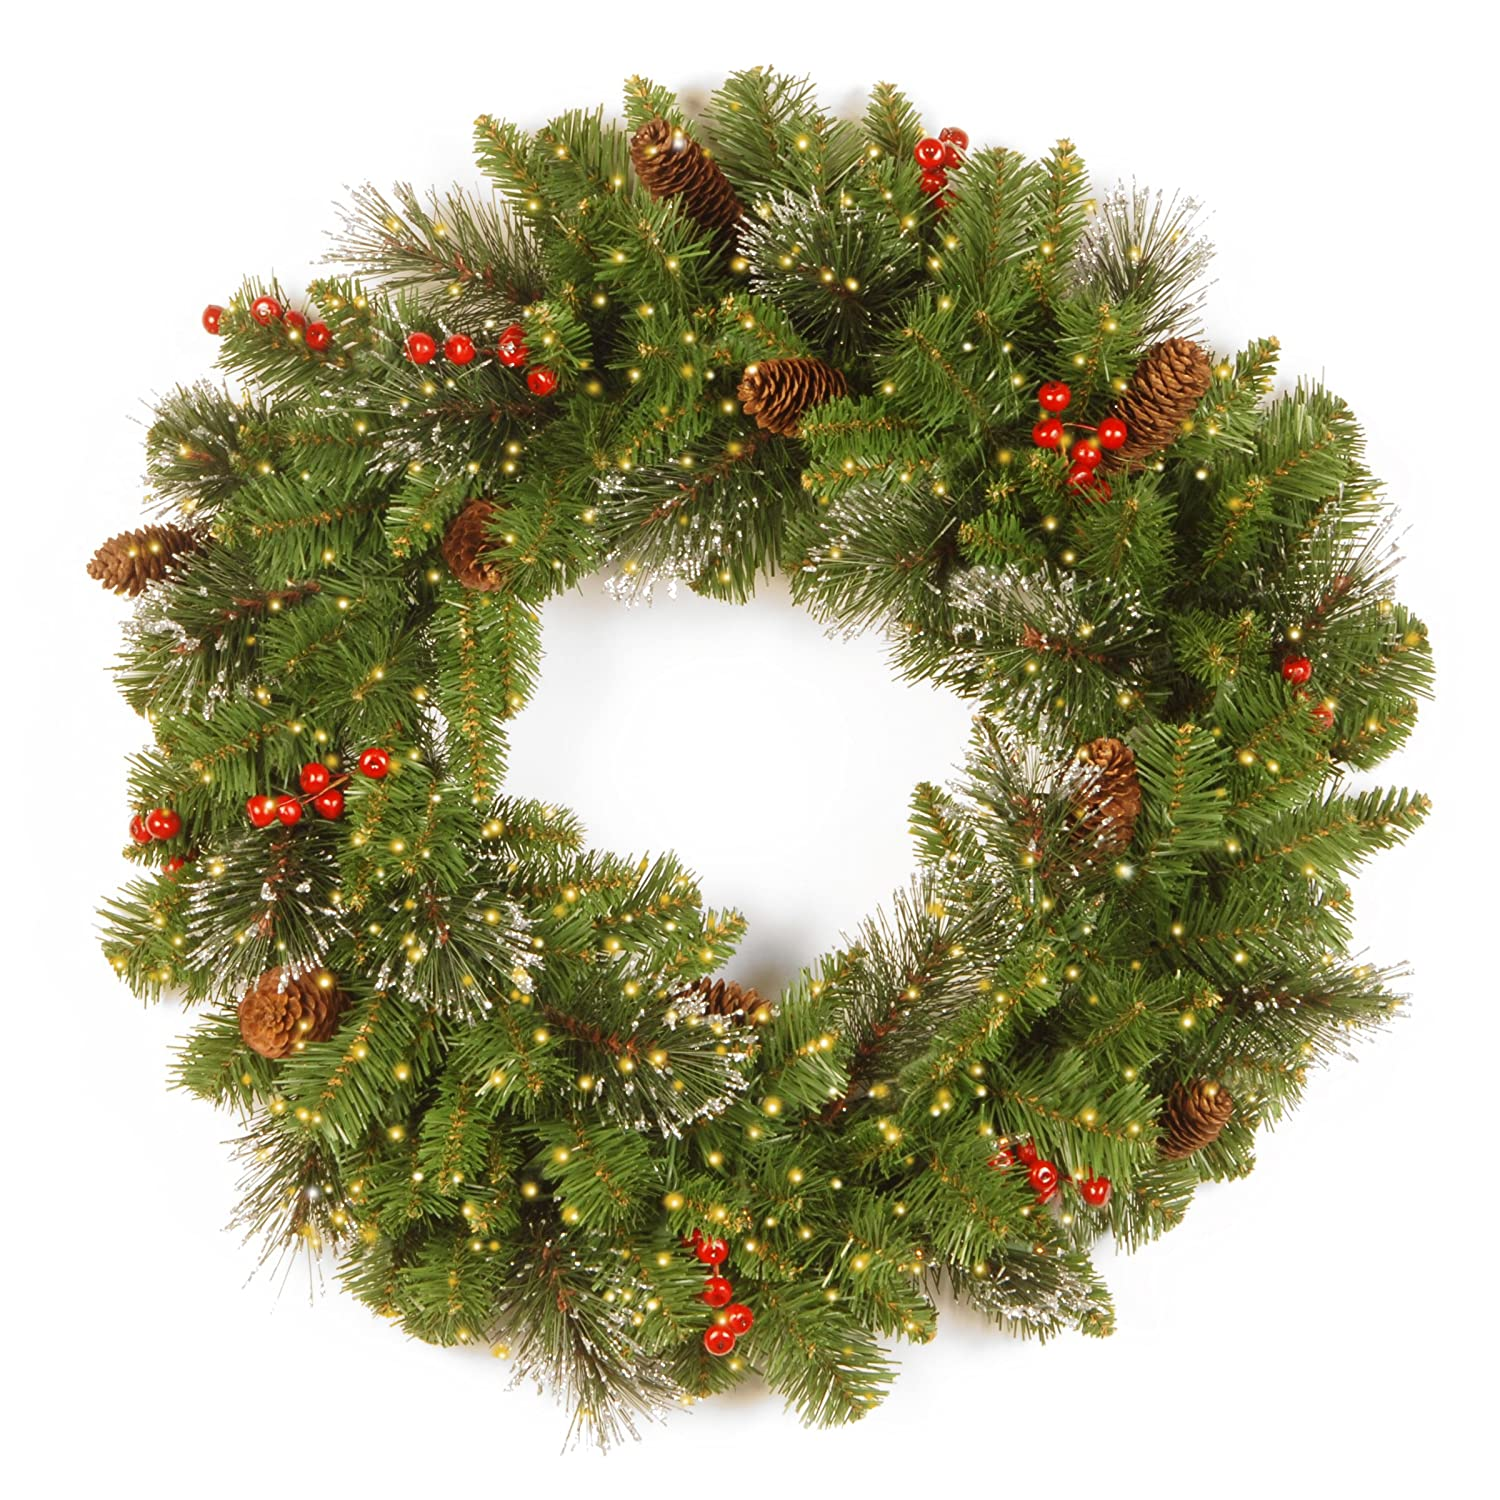 National Tree 24 Inch Crestwood Spruce Wreath with Cones, Glitter, Red Berries, Silver Bristle and 250 Battery Operated Infinity Lights (CW7-383Y-24W-B)